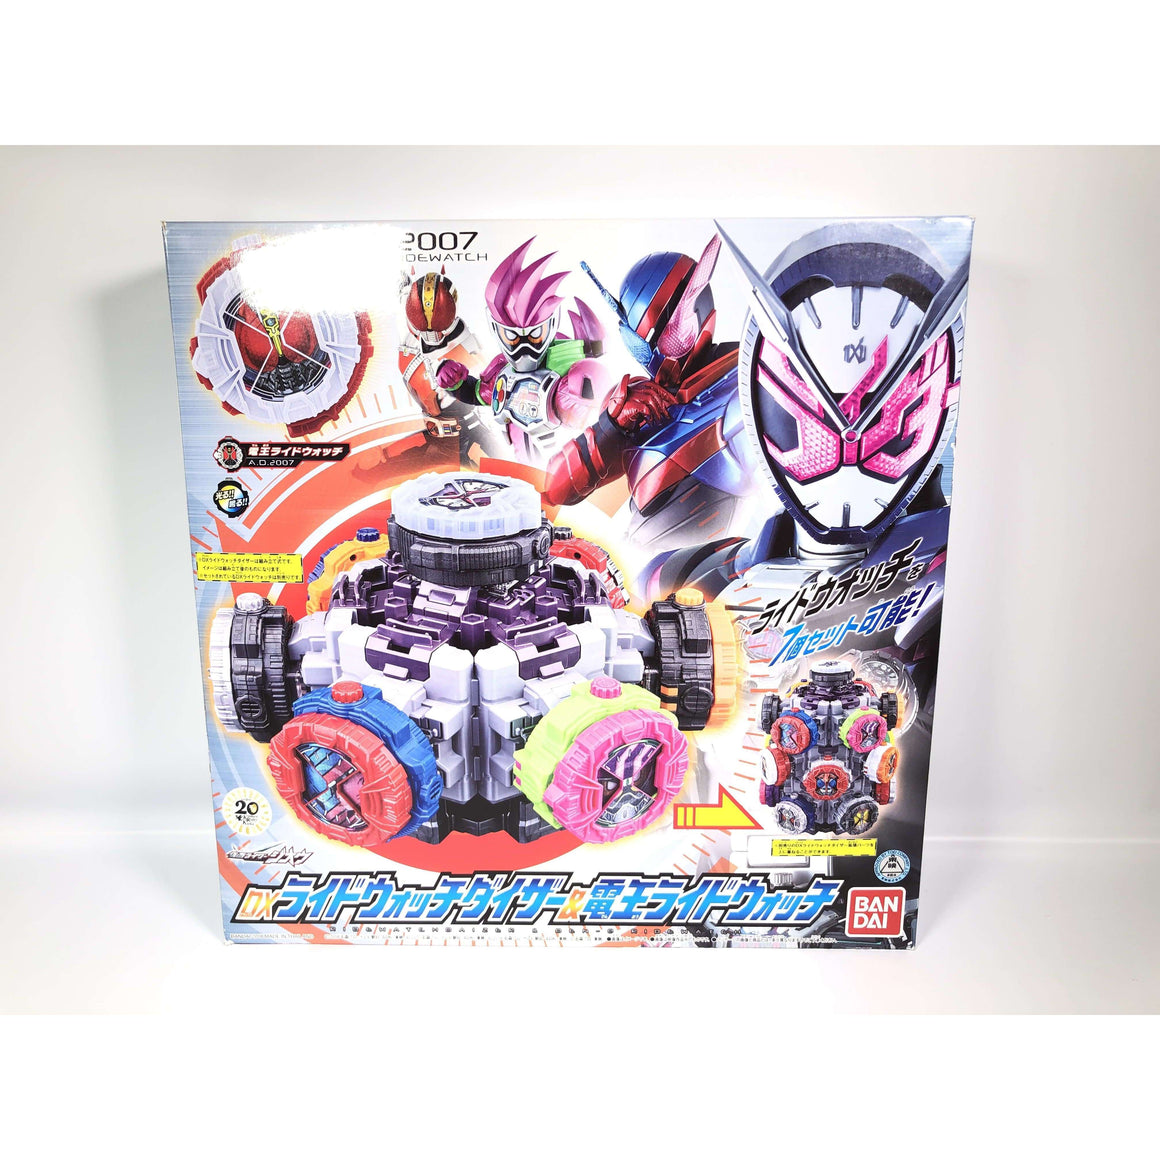 CSTOYS INTERNATIONAL:3000000419878[BOXED]Kamen Rider Zi-O: DX Ride Watch Daizer & Den-O Ride Watch